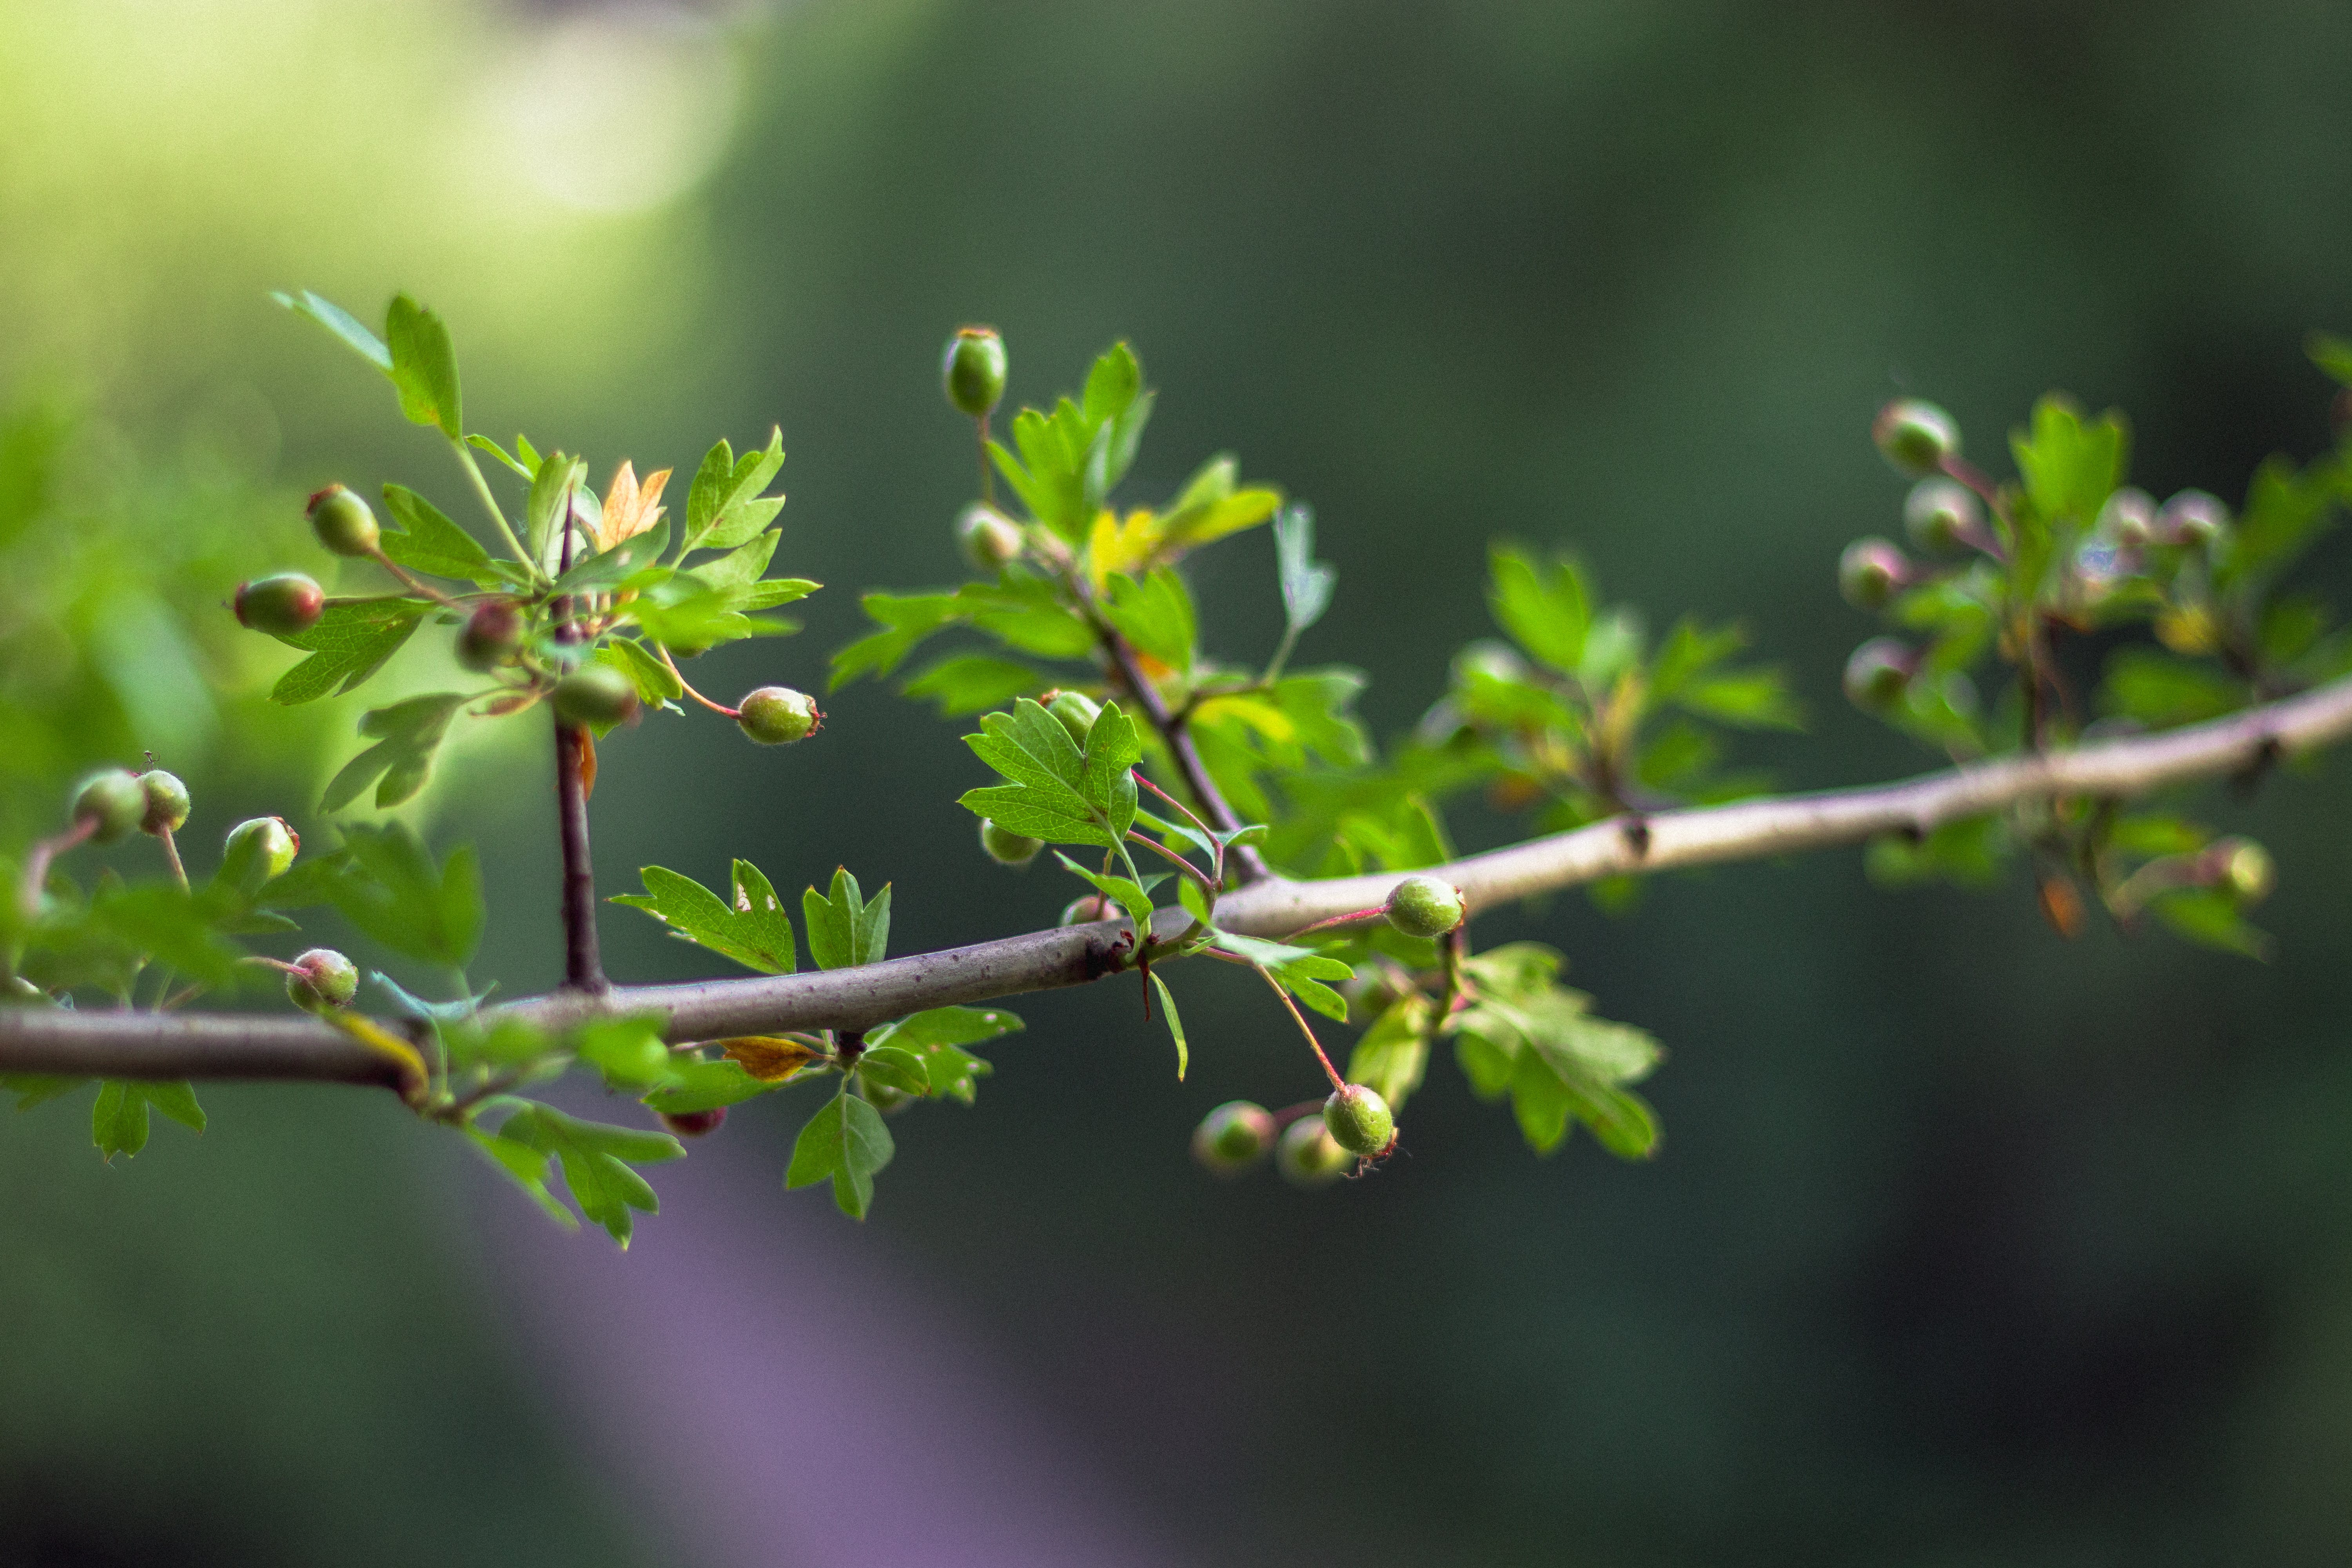 Green Leafed Plant With Flower Buds